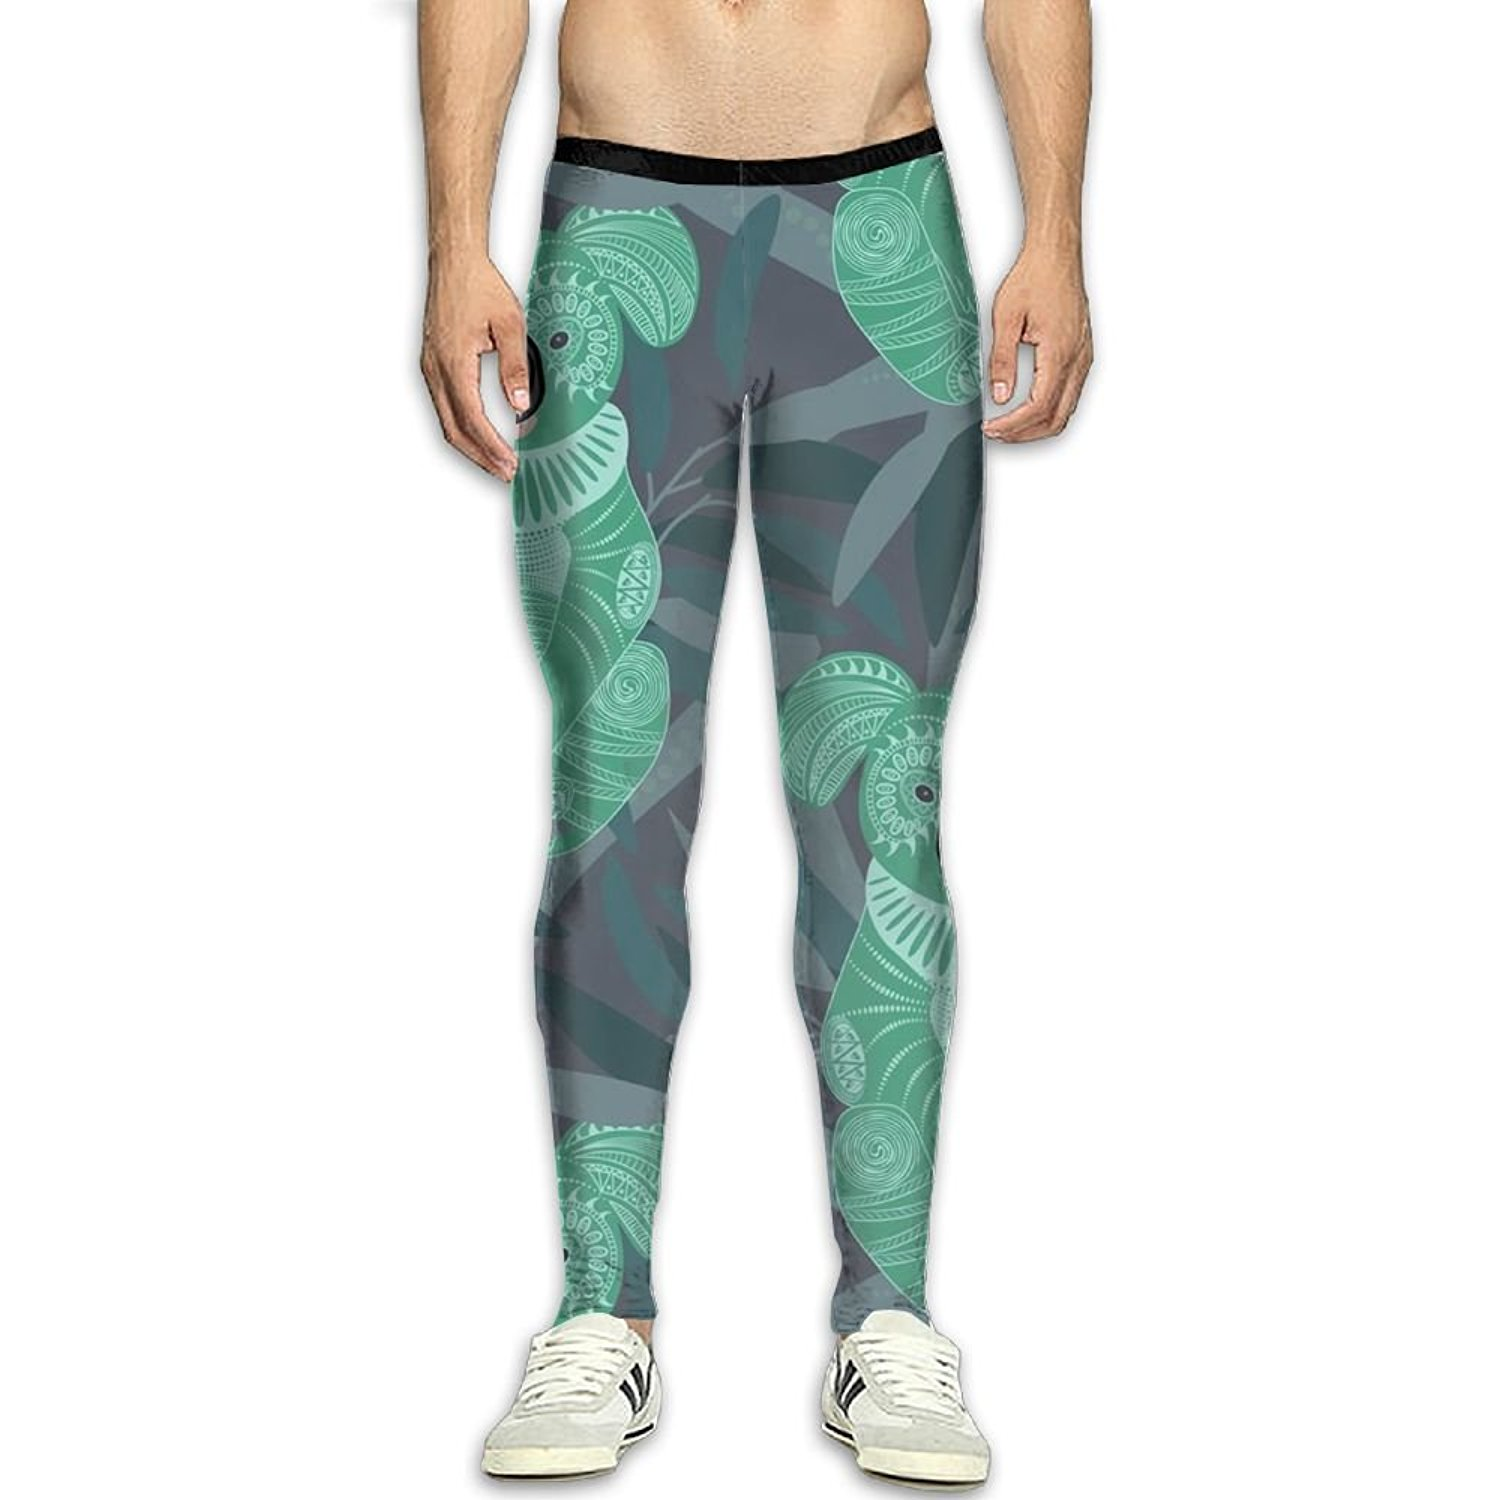 09c68132e5aae Get Quotations · MSYGP Cute Koala Green Animals Compression Pants Men Colorful  Tights Leggings Running Gym Tights For Men